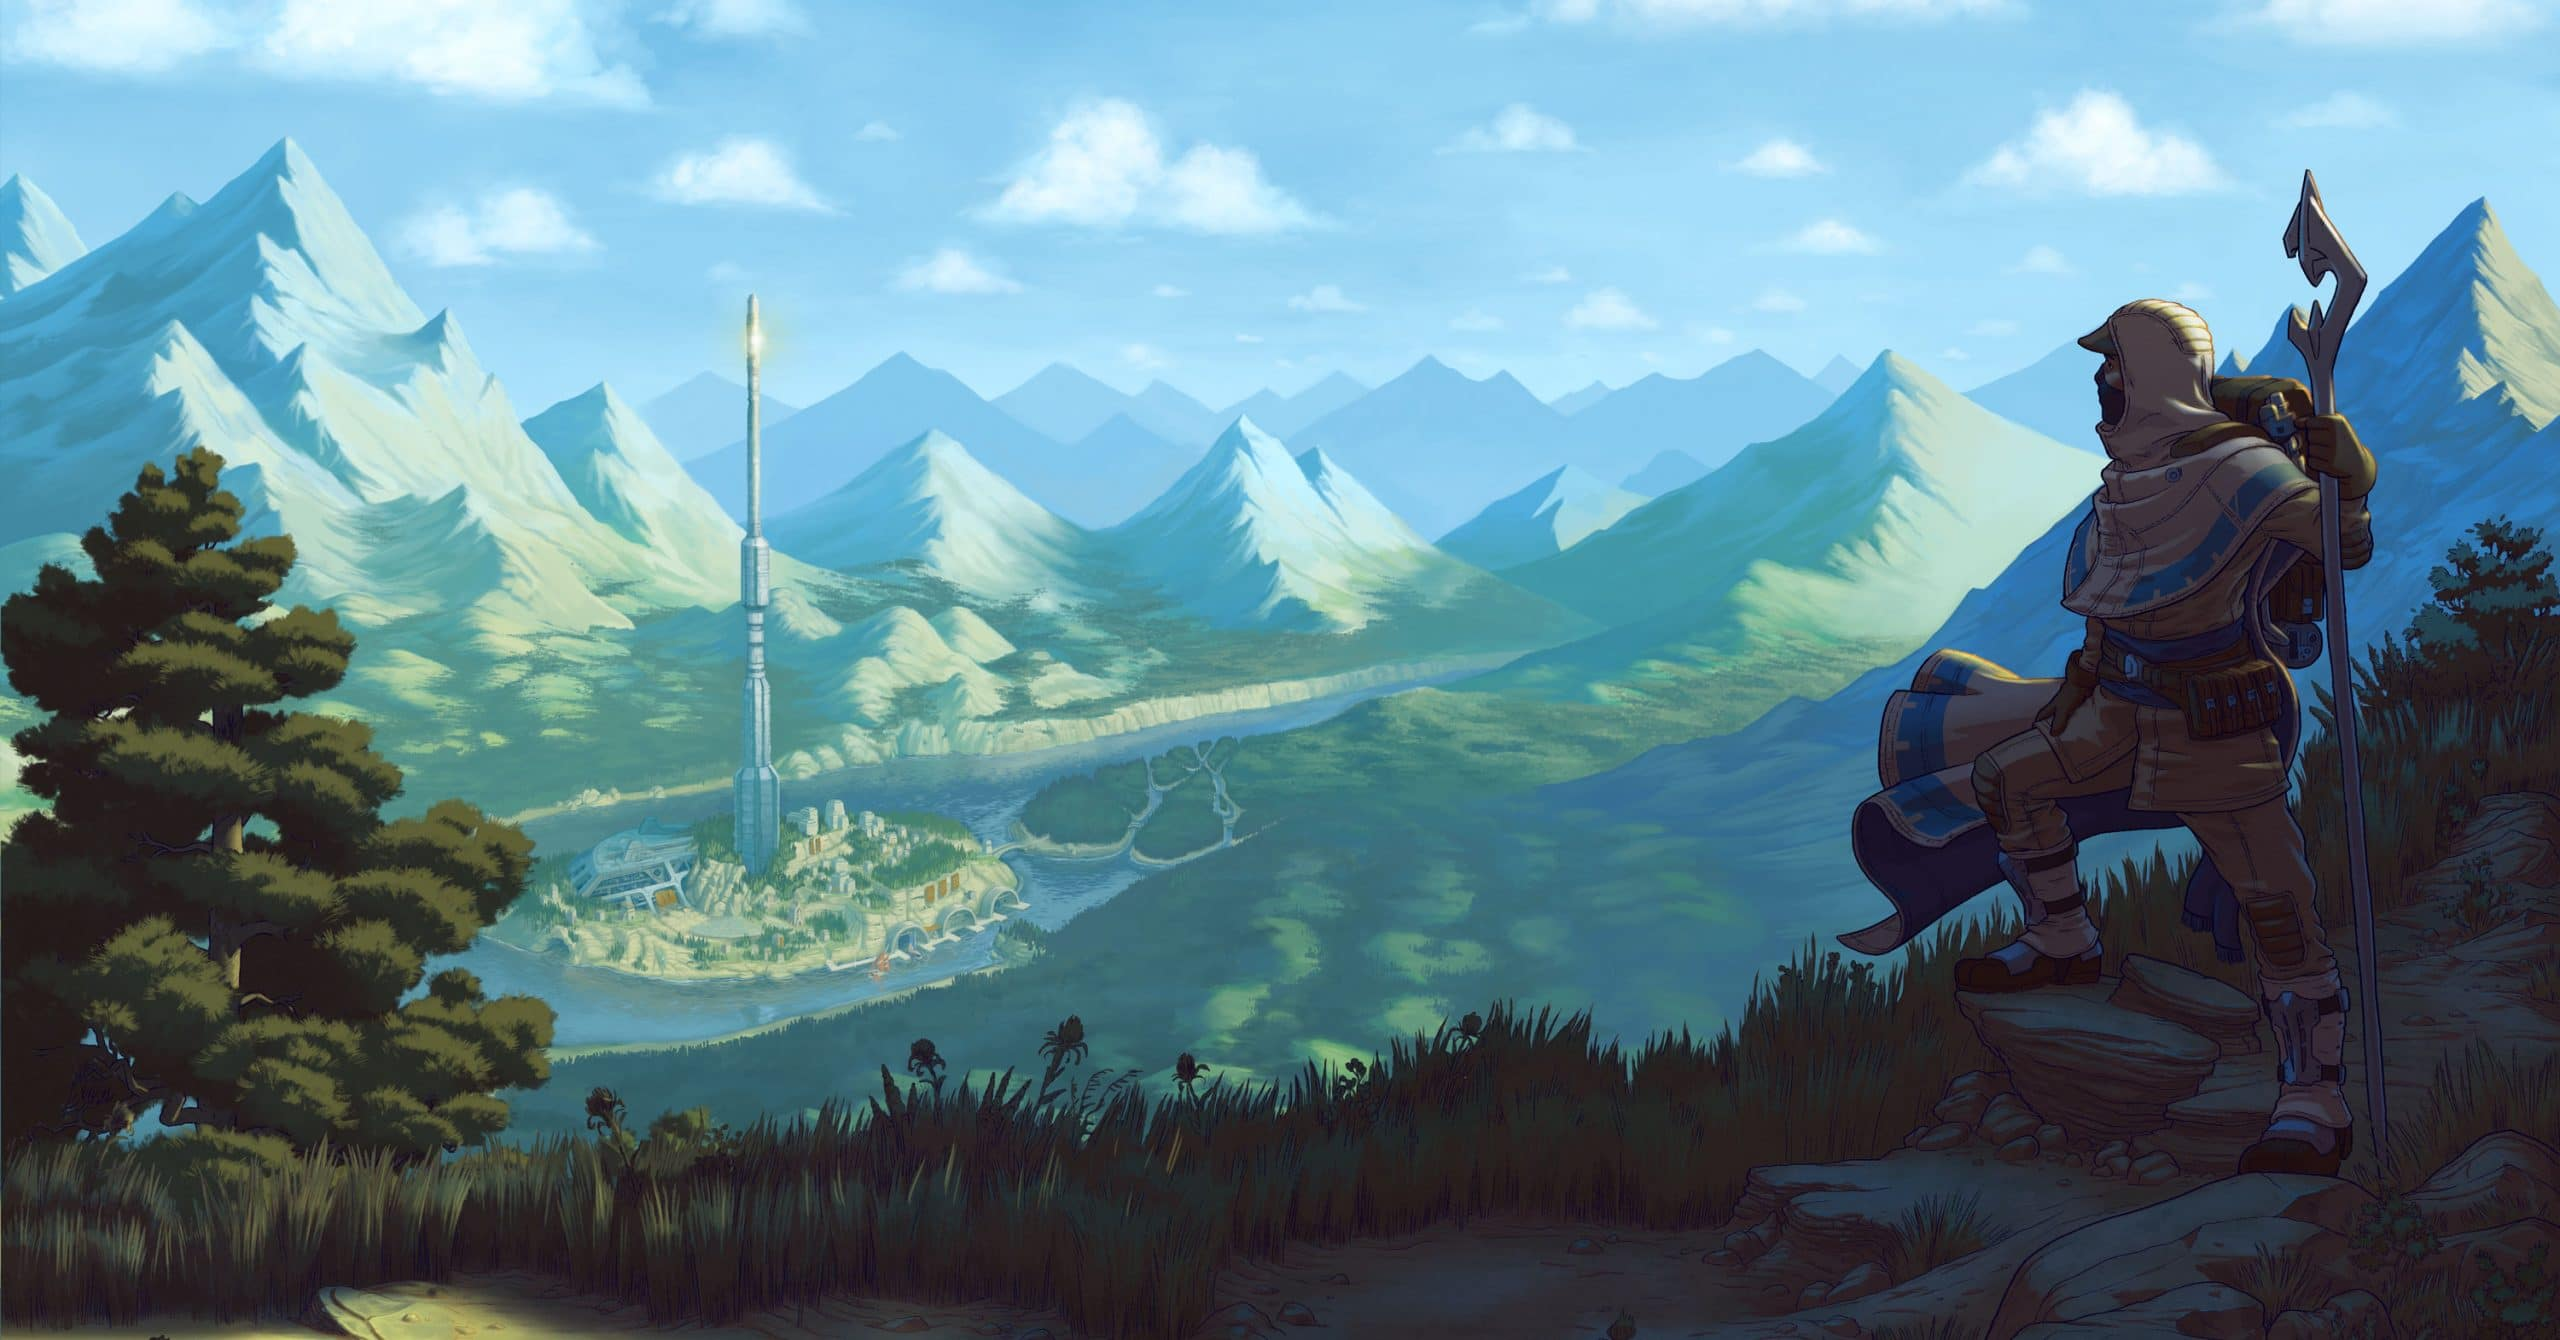 An Earthborne Ranger gazes into a mountainous valley, with a tall, spire-like relic nestled on an island in a river that runs across the valley floor.